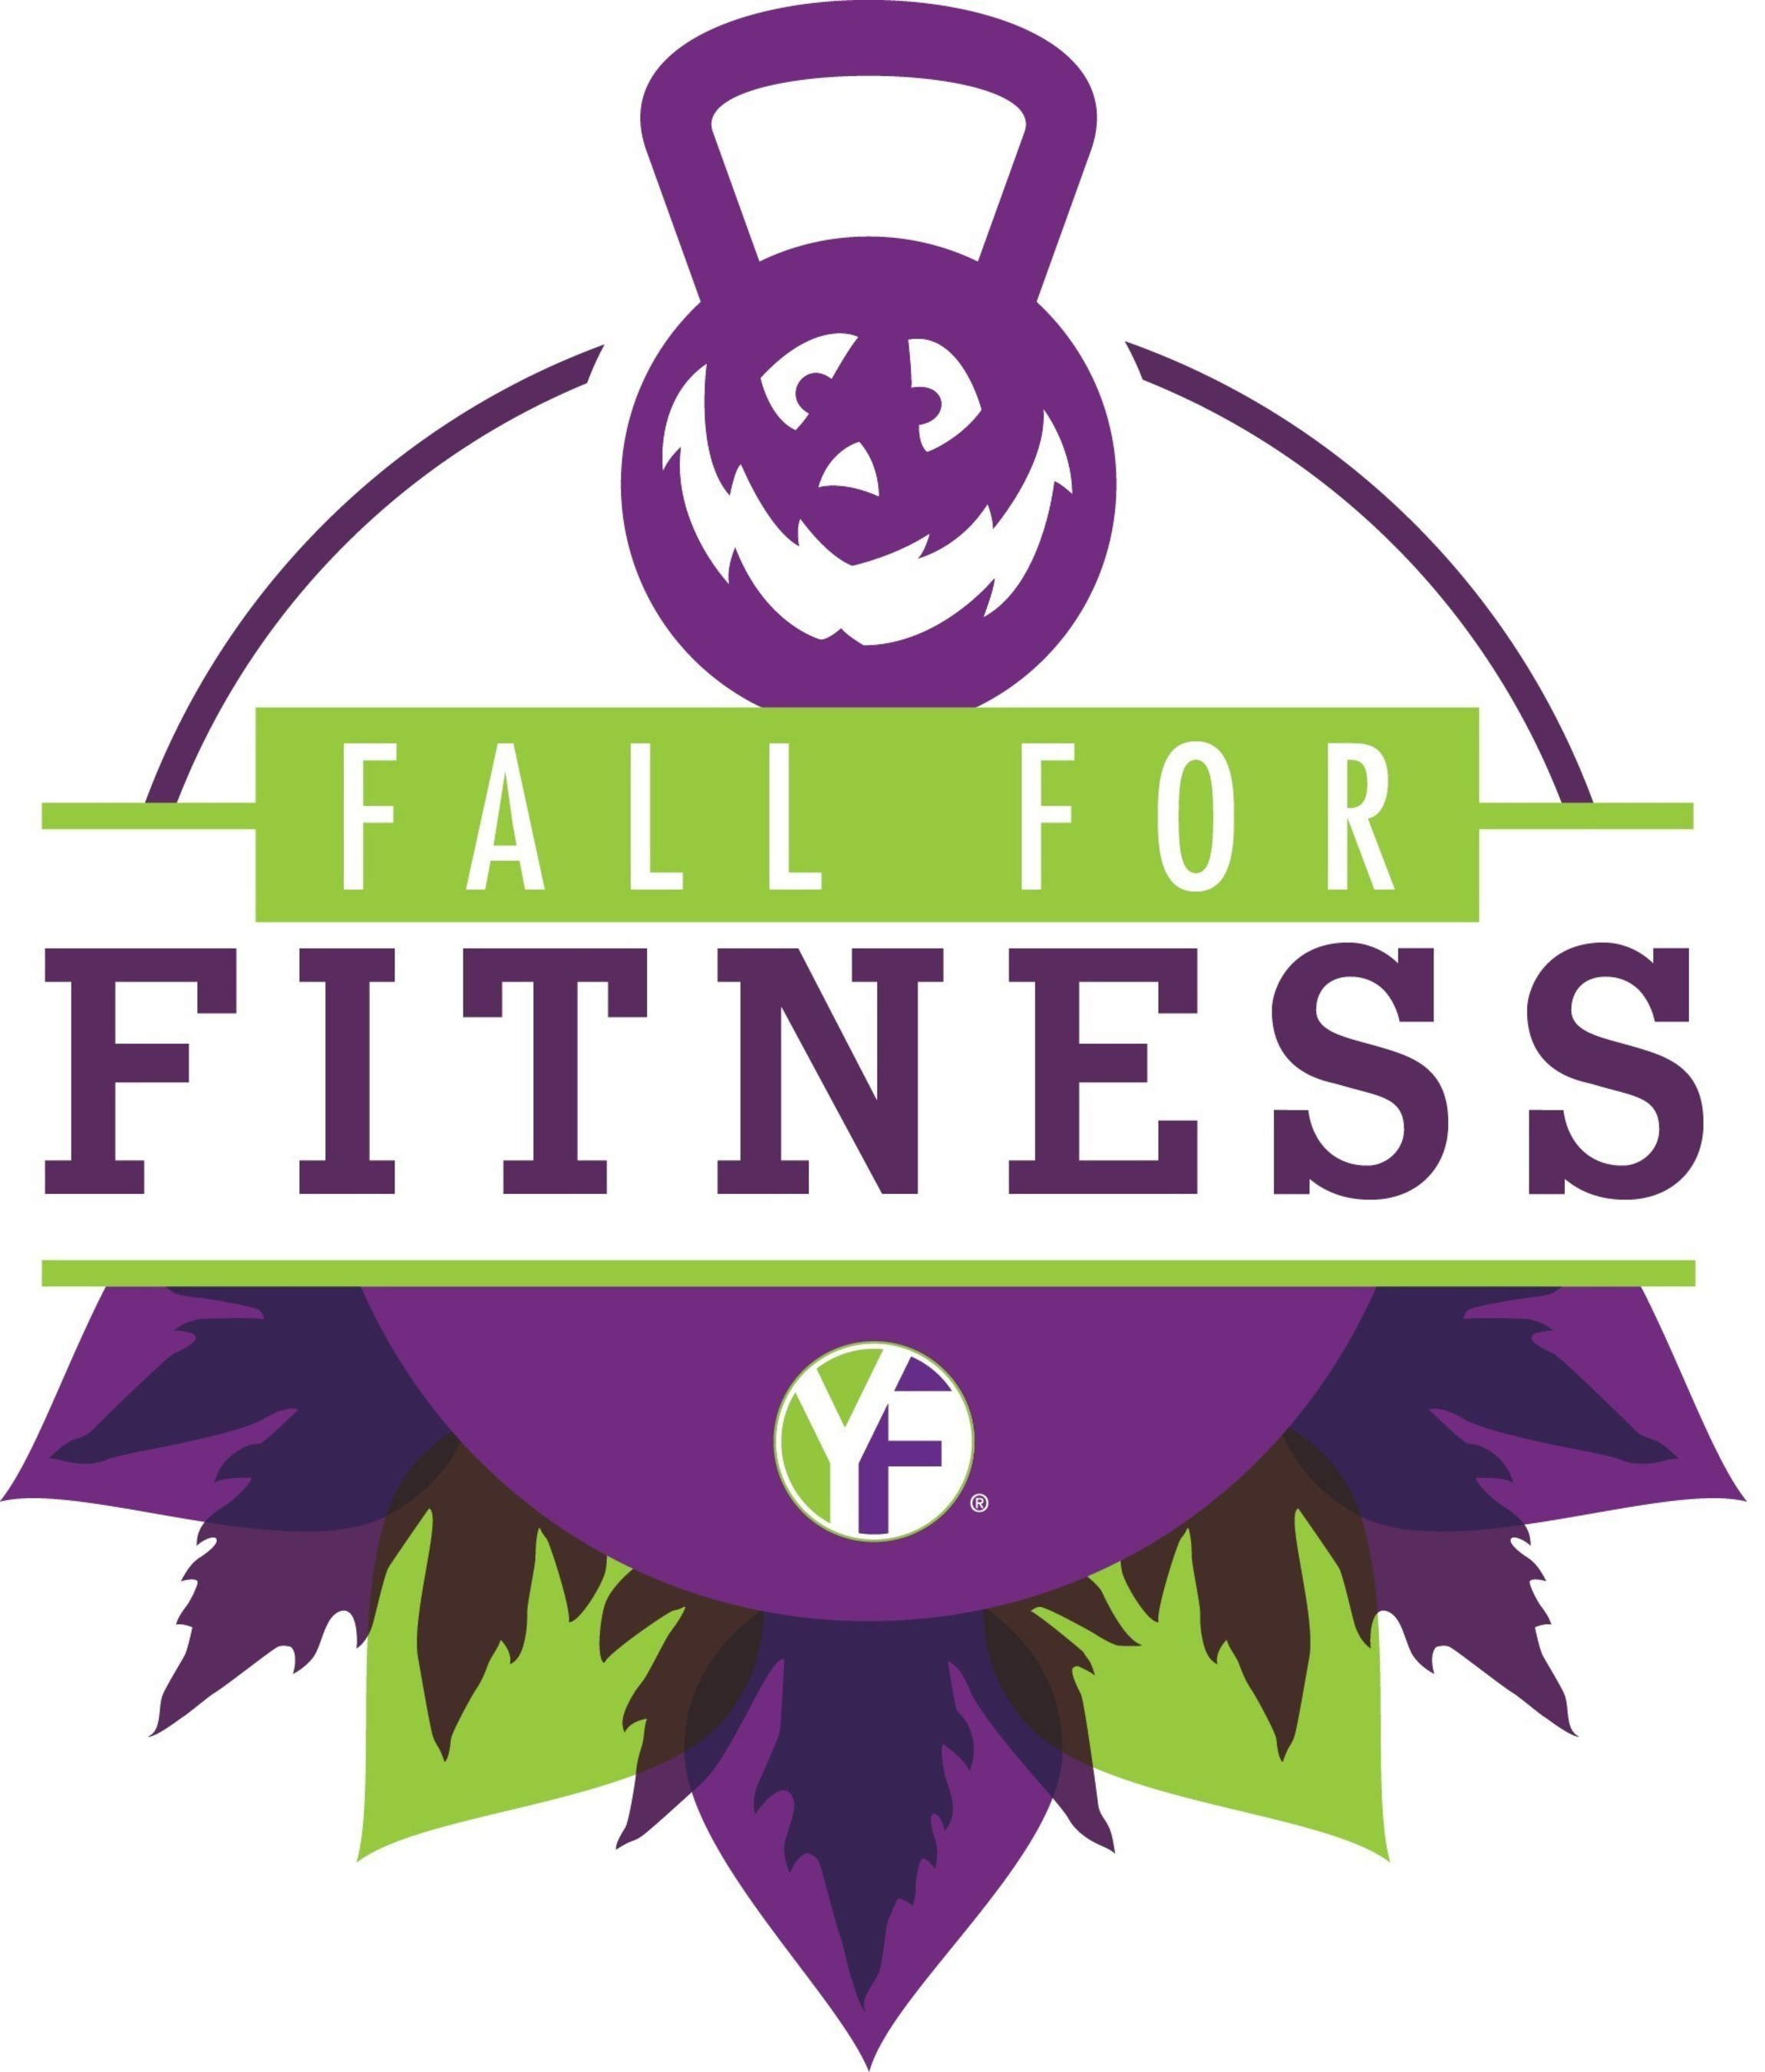 Fall For Fitness With Youfit Health Clubs